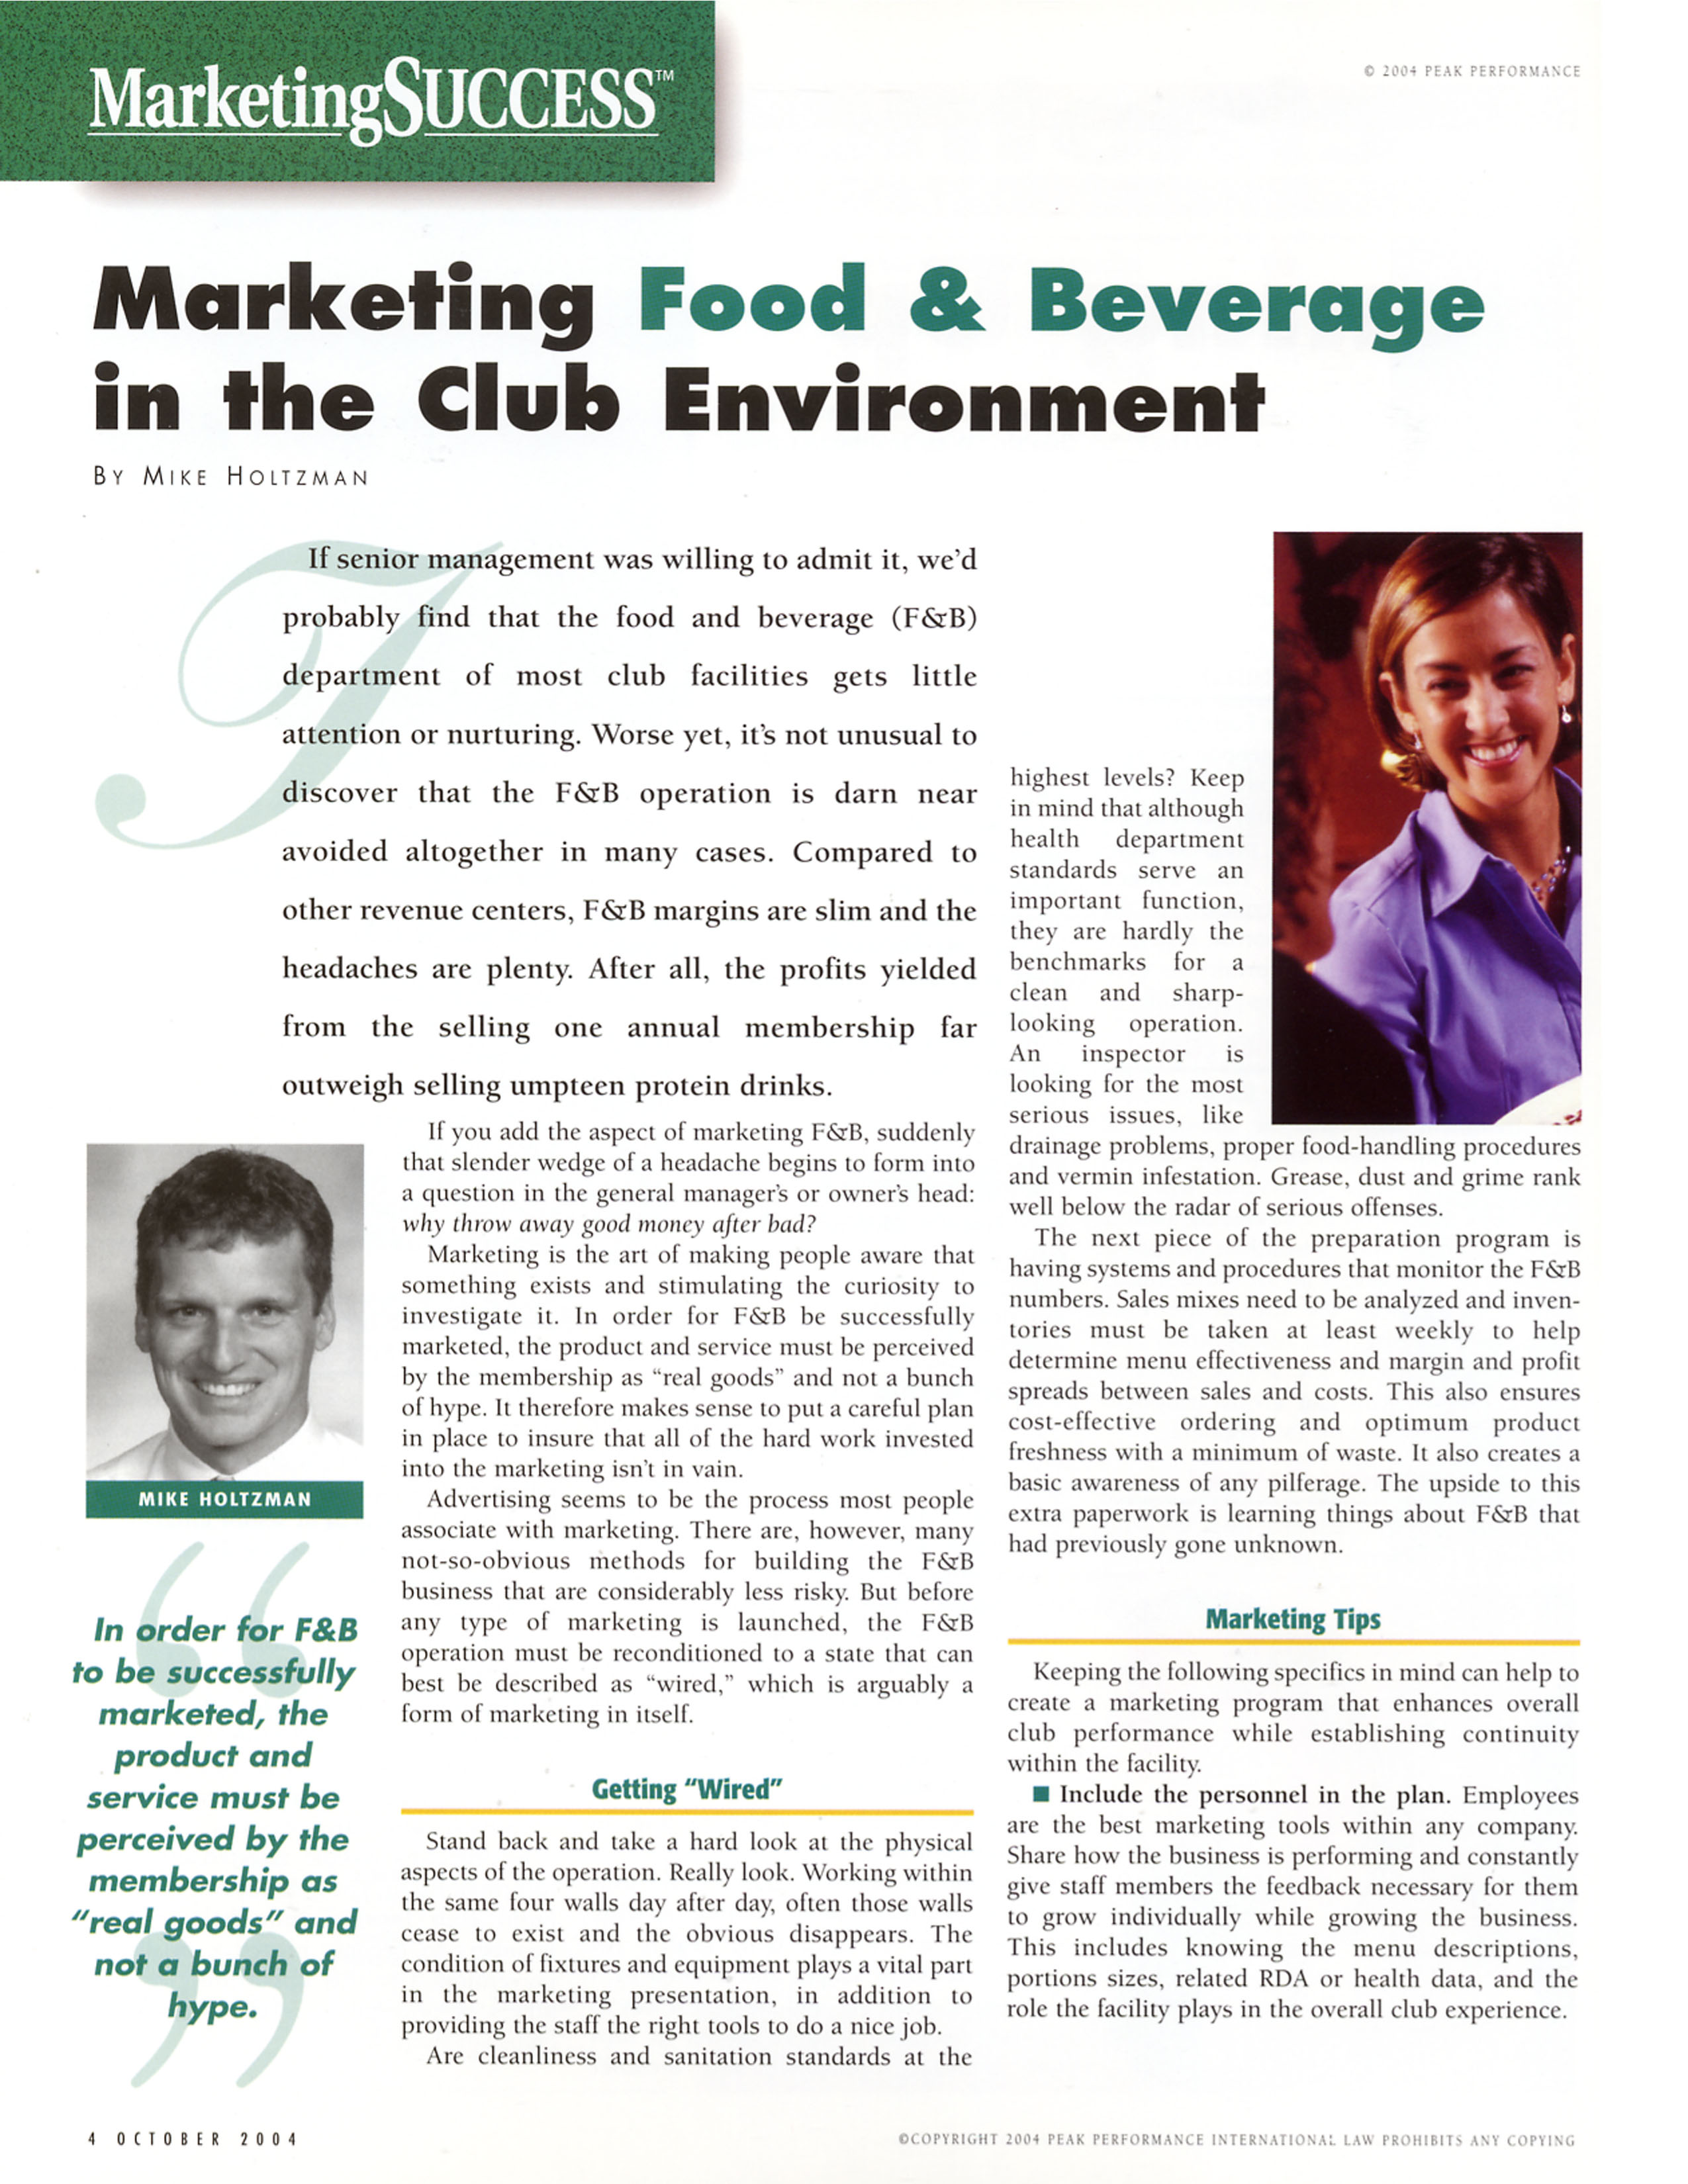 marketing food beverage kitchen design and food and beverage consulting